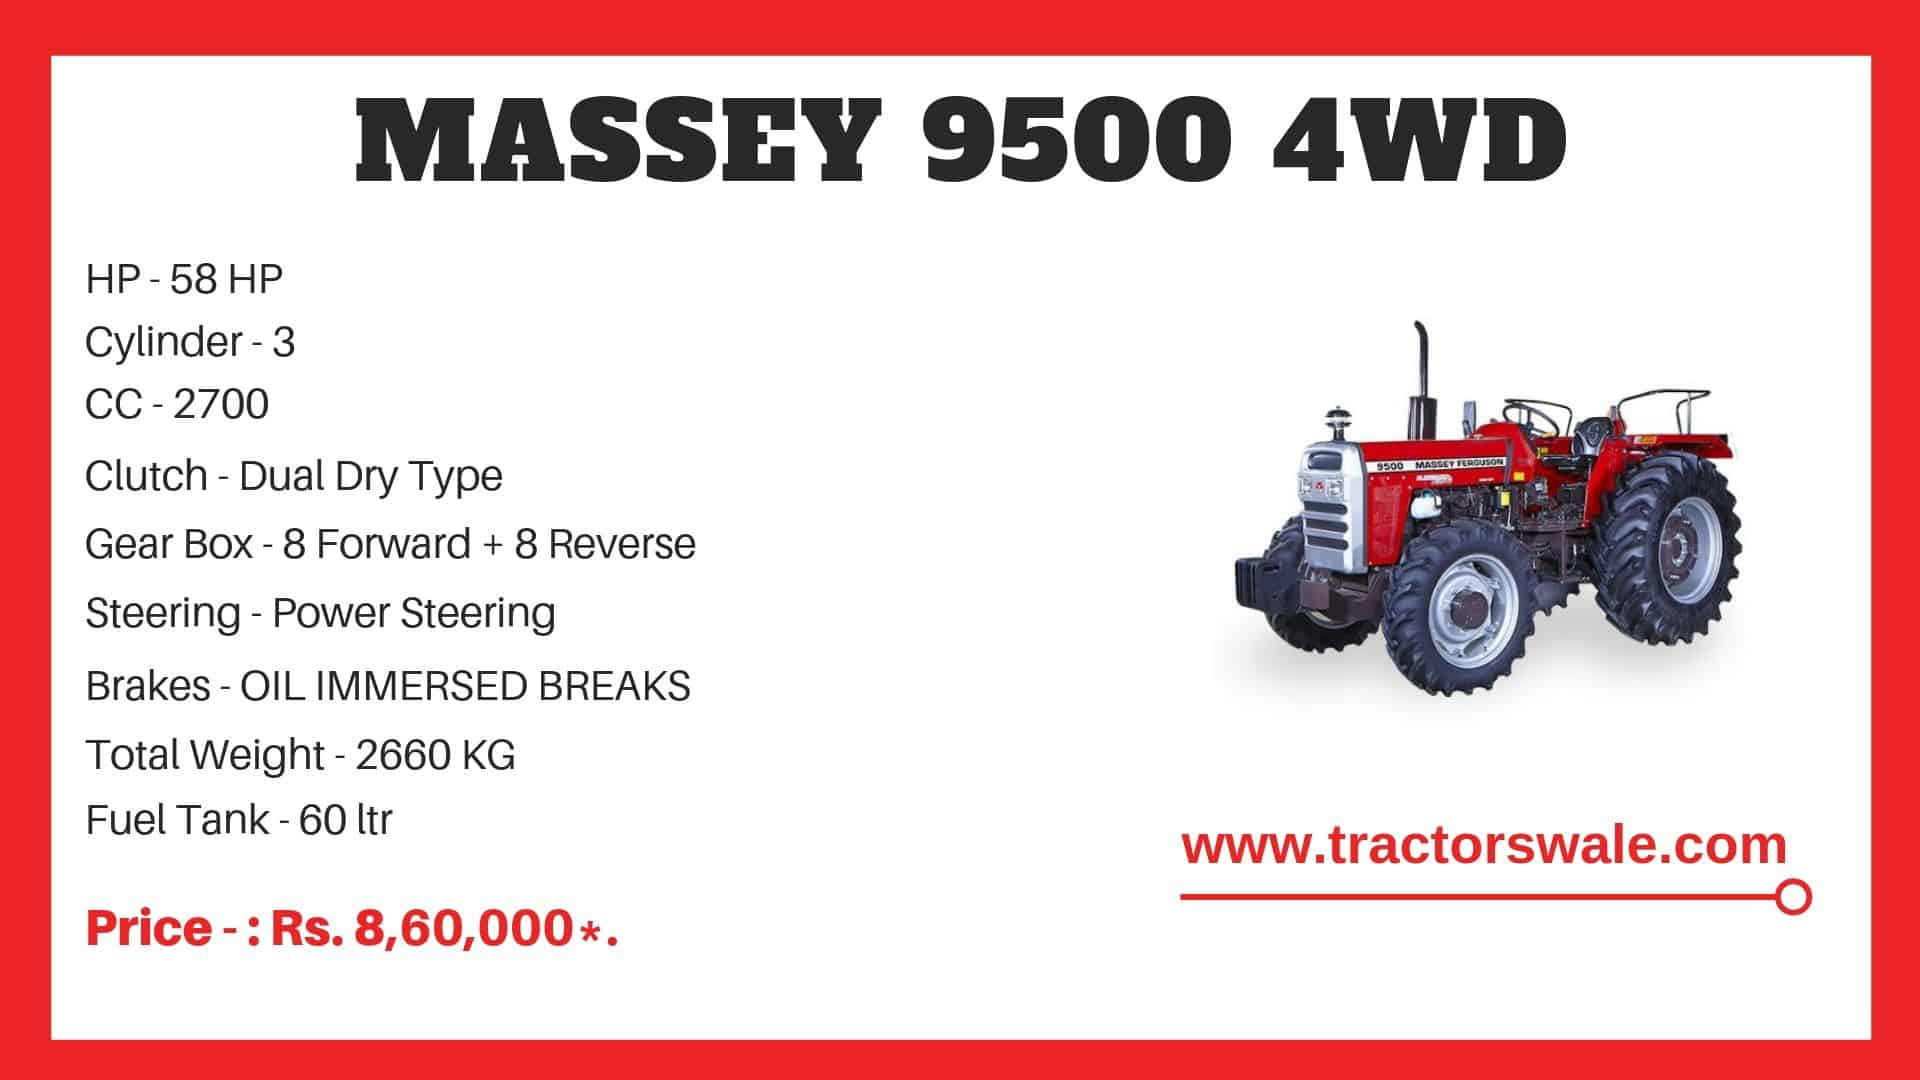 Specifications Of Massey Ferguson 9500 4WD